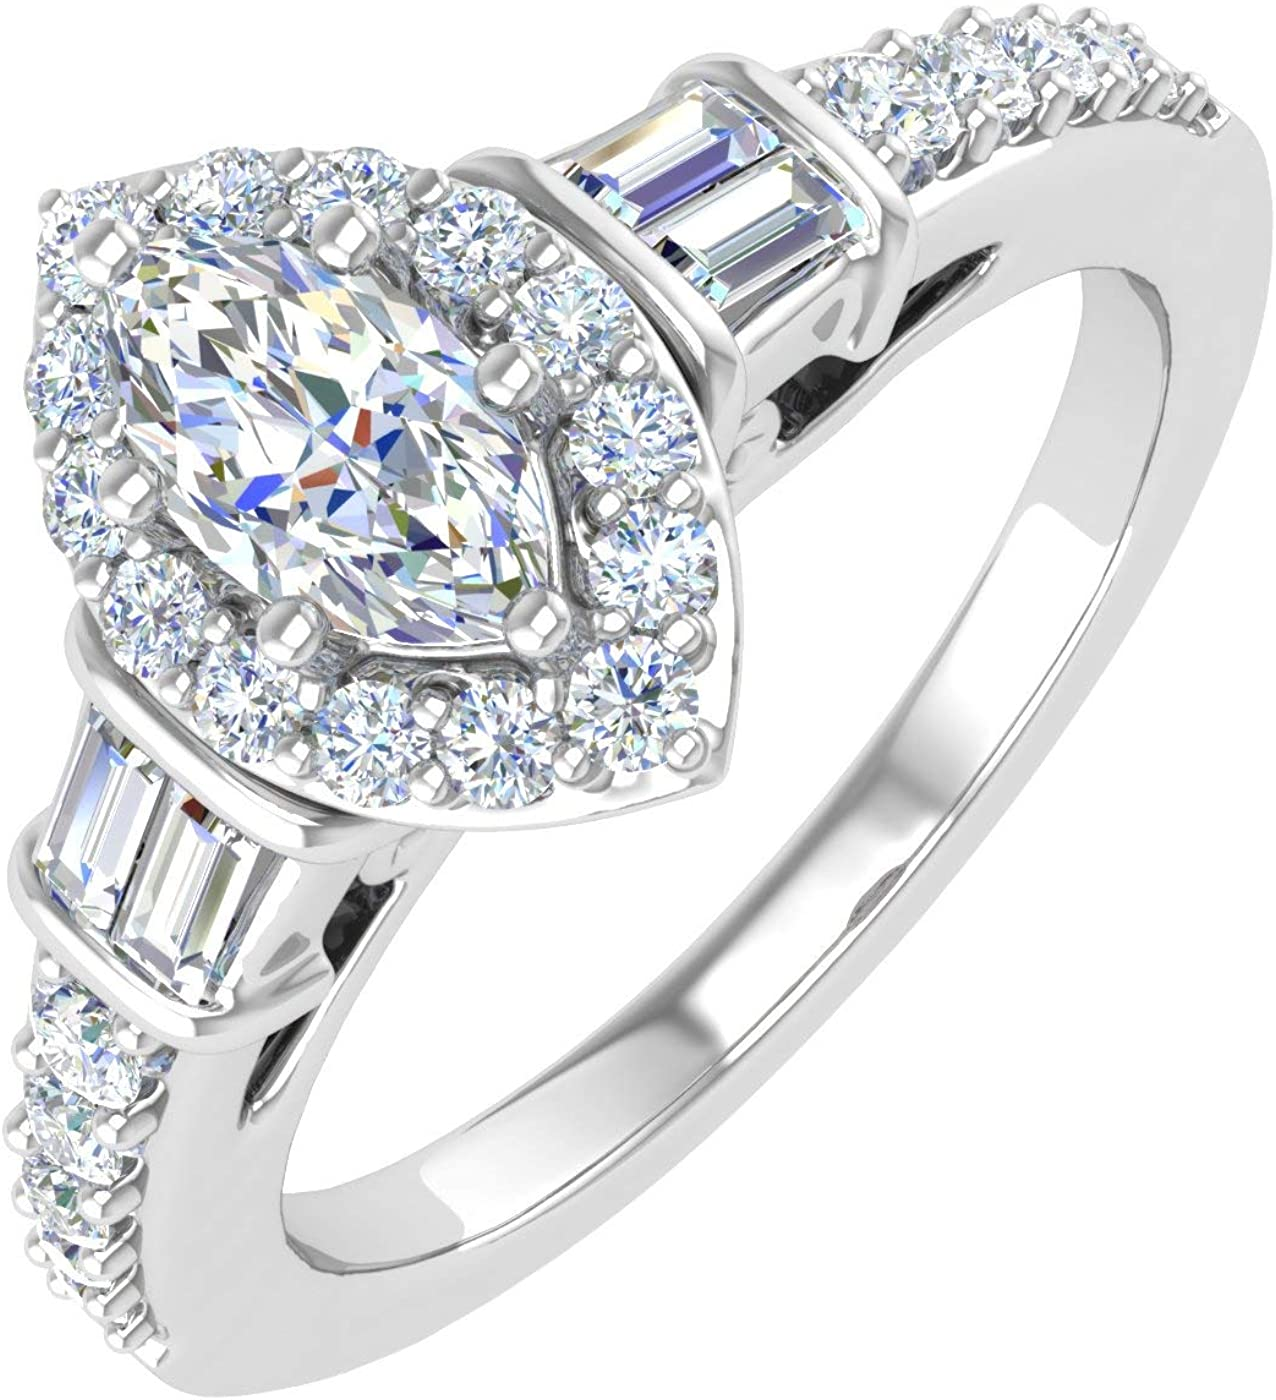 3 4 Carat Diamond Engagement Ring Rare Band White Gold 14K Max 67% OFF in